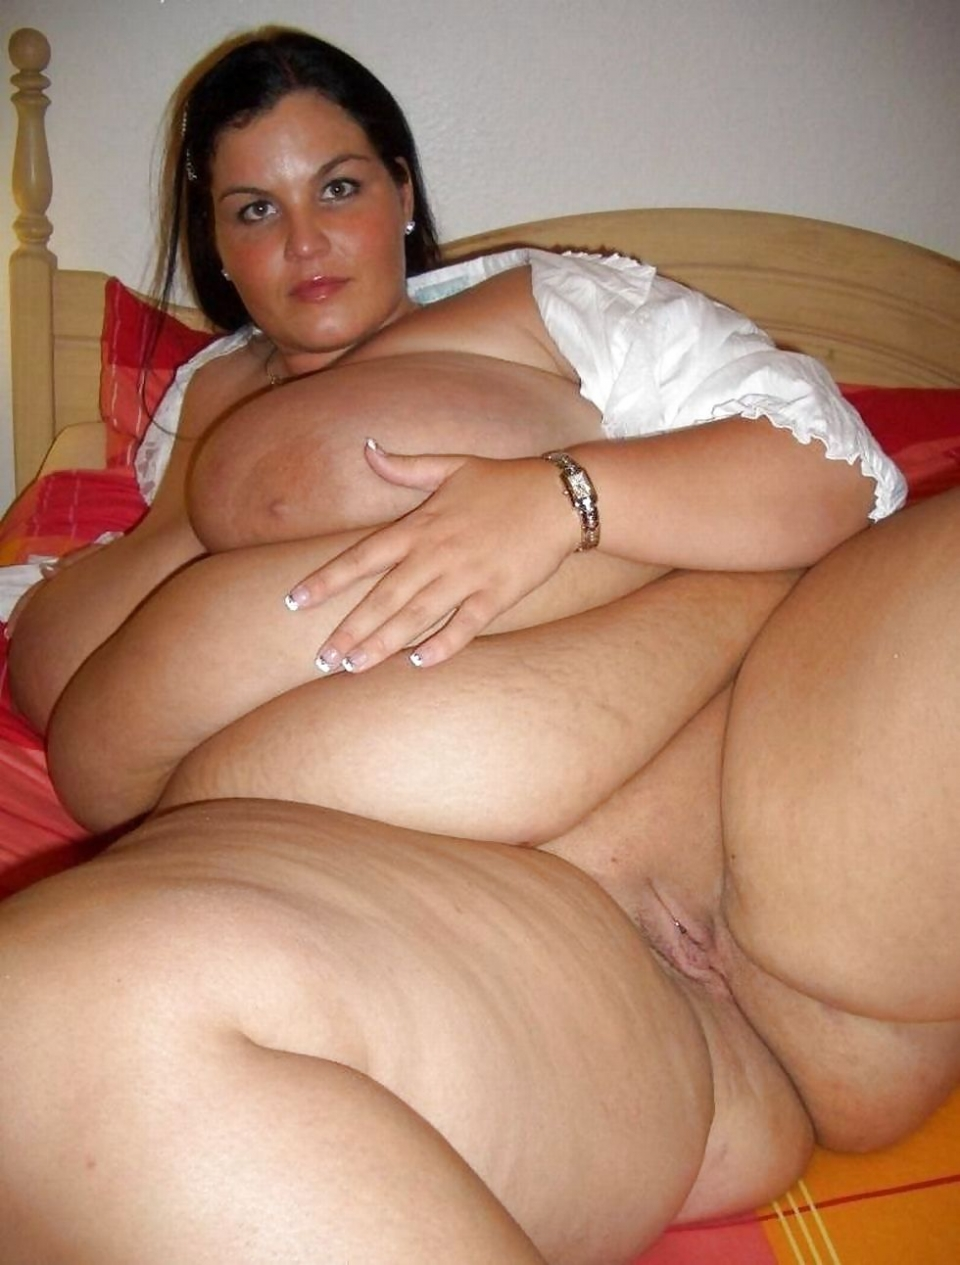 mexican bbw nude women